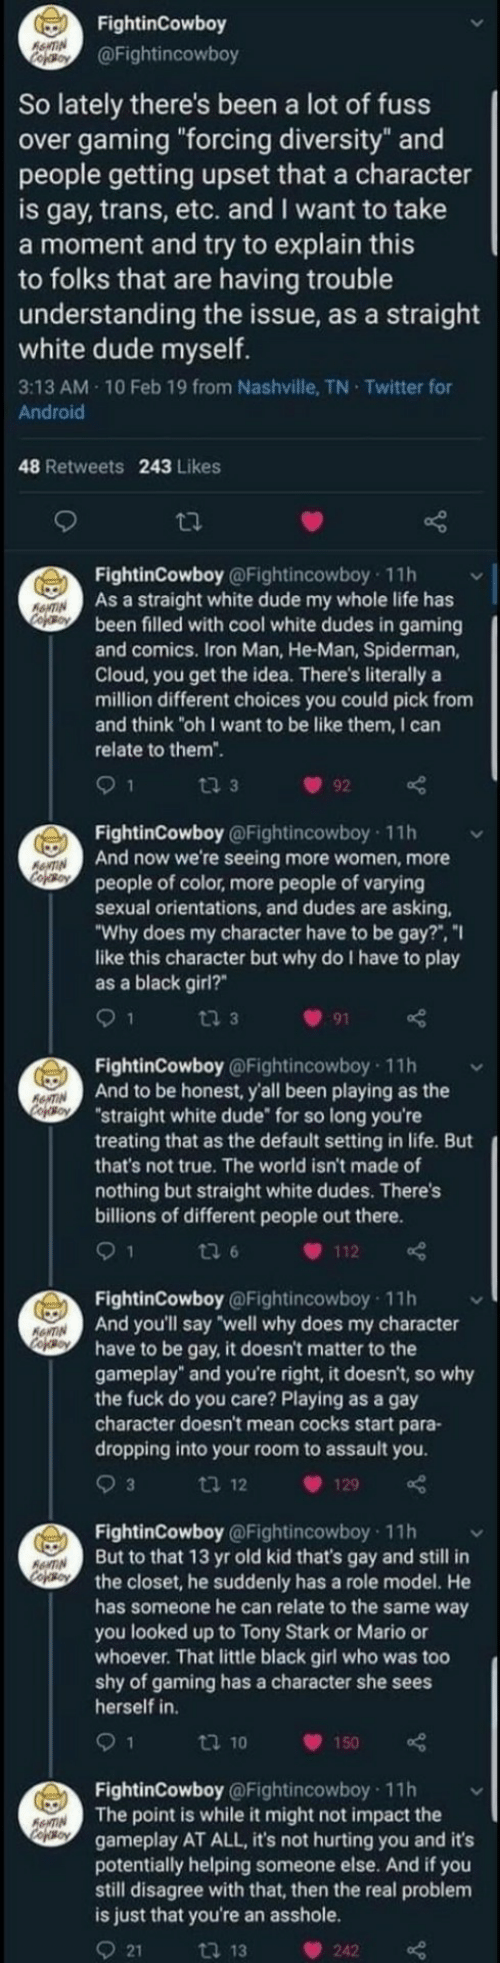 "Billions: FightinCowboy  RewTIN  Cefoy  @Fightincowboy  So lately there's been a lot of fuss  over gaming ""forcing diversity"" and  people getting upset that a character  is gay, trans, etc. and I want to take  a moment and try to explain this  to folks that are having trouble  understanding the issue, as a straight  white dude myself.  3:13 AM 10 Feb 19 from Nashville, TN Twitter for  Android  48 Retweets 243 Likes  FightinCowboy @Fightincowboy 11h  As a straight white dude my whole life has  been filled with cool white dudes in gaming  and comics. Iron Man, He-Man, Spiderman,  Cloud, you get the idea. There's literally a  million different choices you could pick from  and think ""oh I want to be like them, I can  ANTIN  Cooy  relate to them"".  ti 3  92  FightinCowboy @Fightincowboy 11h  And now we're seeing more women, more  people of color, more people of varying  sexual orientations, and dudes are asking  ""Why does my character have to be gay?"", ""I  like this character but why do I have to play  as a black girl?  ANTIN  CofoBoy  9 1  ti 3  91  FightinCowboy @Fightincowboy 11h  And to be honest, y'all been playing as the  ""straight white dude for so long you're  treating that as the default setting in life. But  that's not true. The world isn't made of  RNTIN  CopOBoY  nothing but straight white dudes. There's  billions of different people out there.  1  ti 6  112  FightinCowboy @Fightincowboy 11h  And you'll say well why does my character  have to be gay, it doesn't matter to the  gameplay"" and you're right, it doesn't, so why  the fuck do you care? Playing as a gay  character doesn't mean cocks start para-  dropping into your room to assault you  ANTIN  cofeo  3  ti 12  129  FightinCowboy @Fightincowboy 11h  But to that 13 yr old kid that's gay and still in  the closet, he suddenly has a role model. He  has someone he can relate to the same way  you looked up to Tony Stark or Mario or  whoever. That little black girl who was too  shy of gaming has a character she sees  herself in  AANTIN  Cojso  9 1  t 10  150  FightinCowboy @Fightincowboy 11h  The point is while it might not impact the  gameplay AT ALL, it's not hurting you and it's  potentially helping someone else. And if you  still disagree with that, then the real problem  is just that you're an asshole.  AeNTIN  Cofeso  21  ti 13  242"